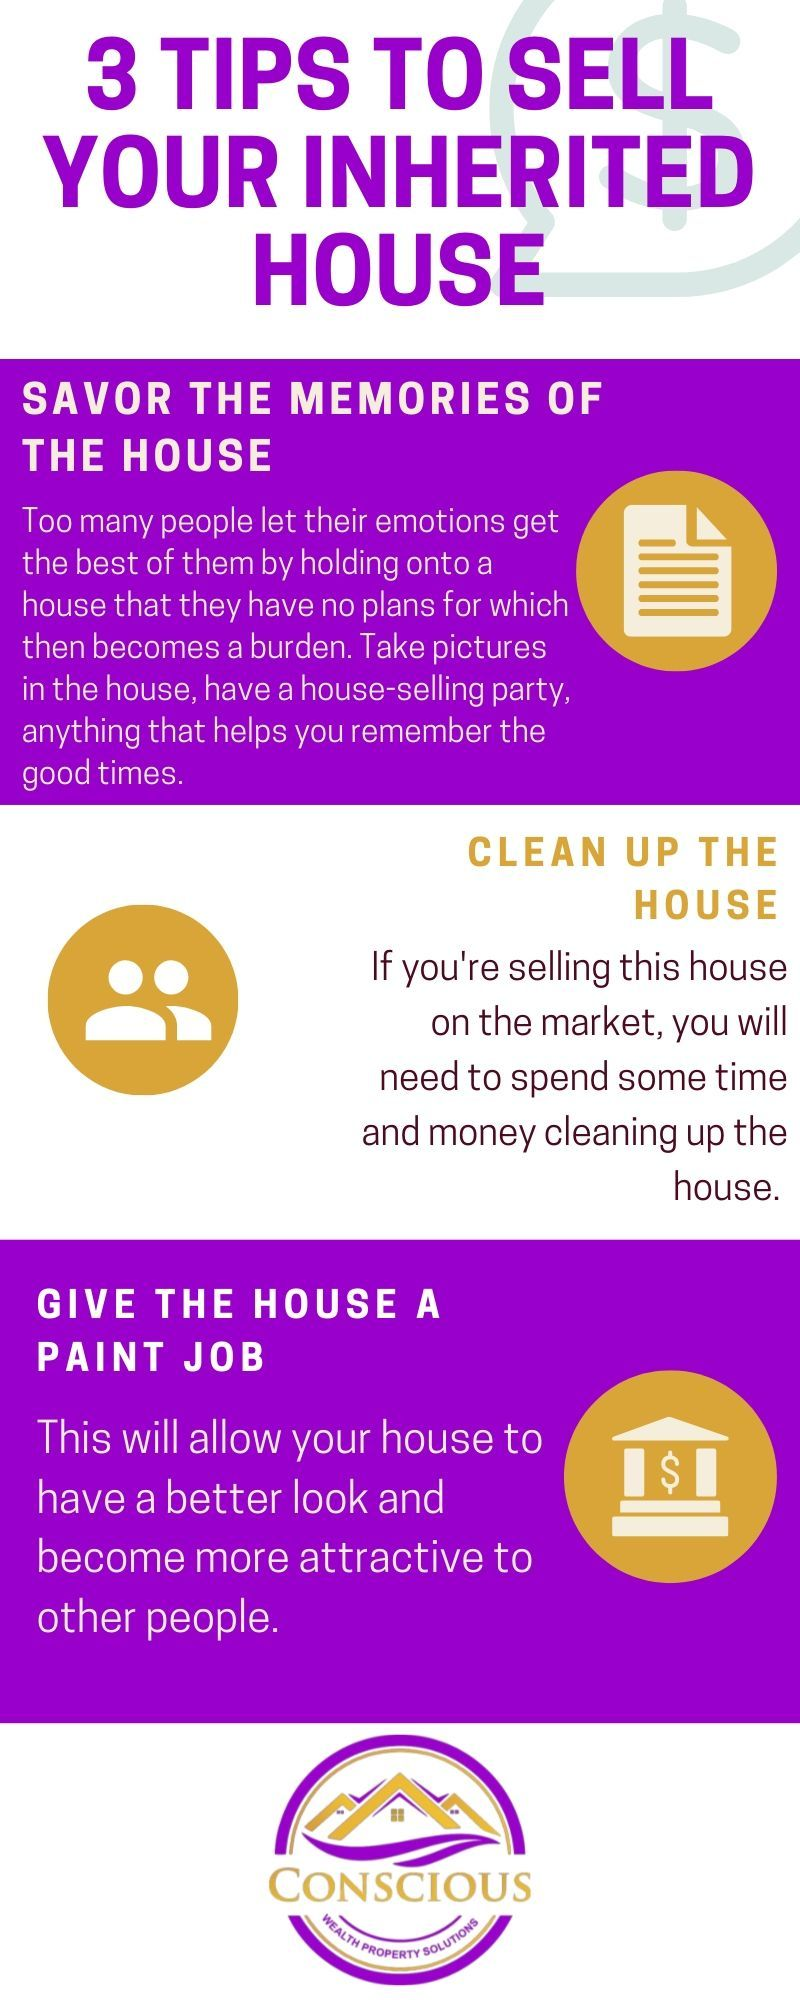 3 Ways to Sell: Sell through an agent, sell on your own, and selling it to home buyers In Seattle. All of them have there own pros and cons. Call us for more info!